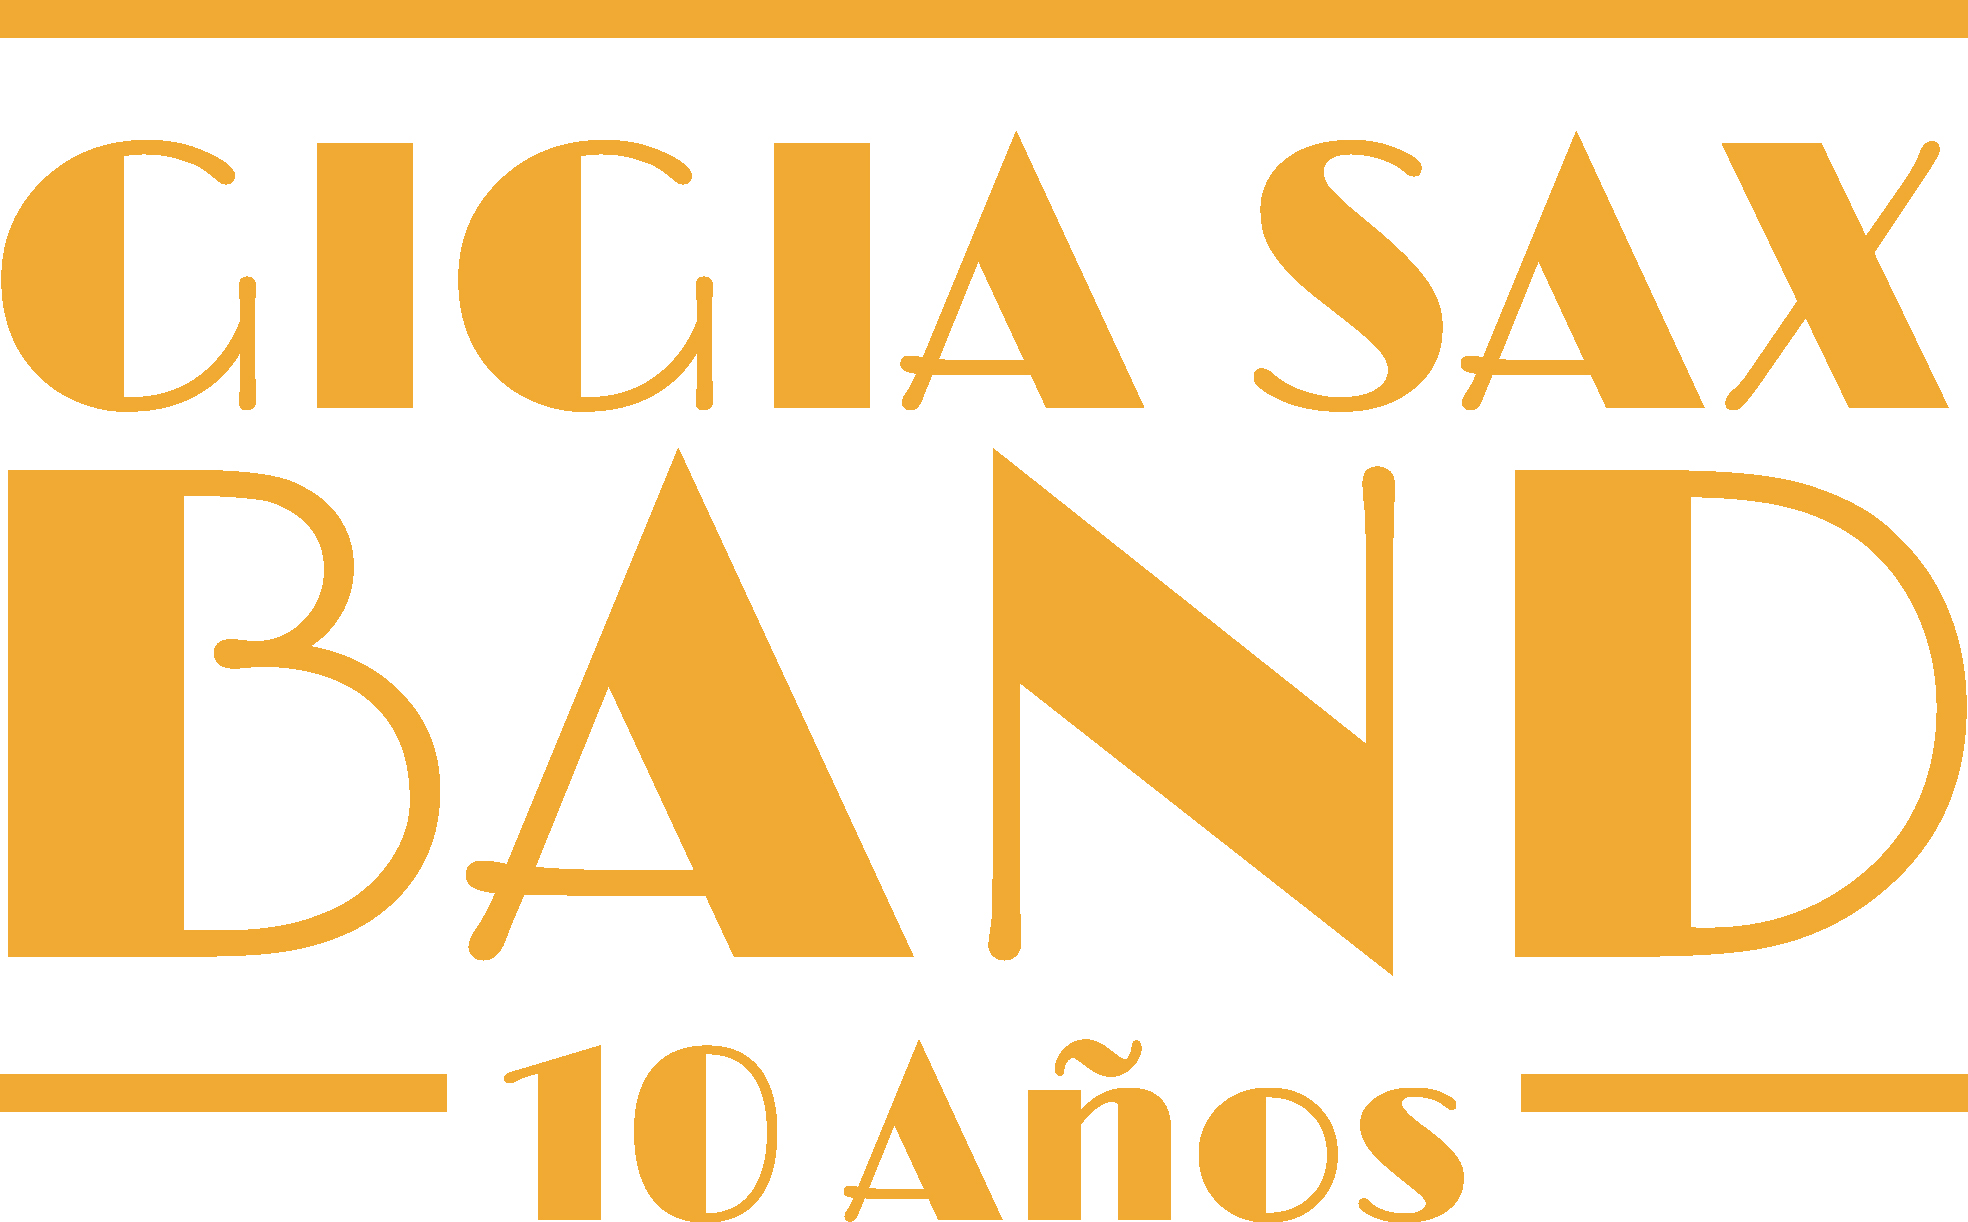 Gigia Sax Band Logotype for the event